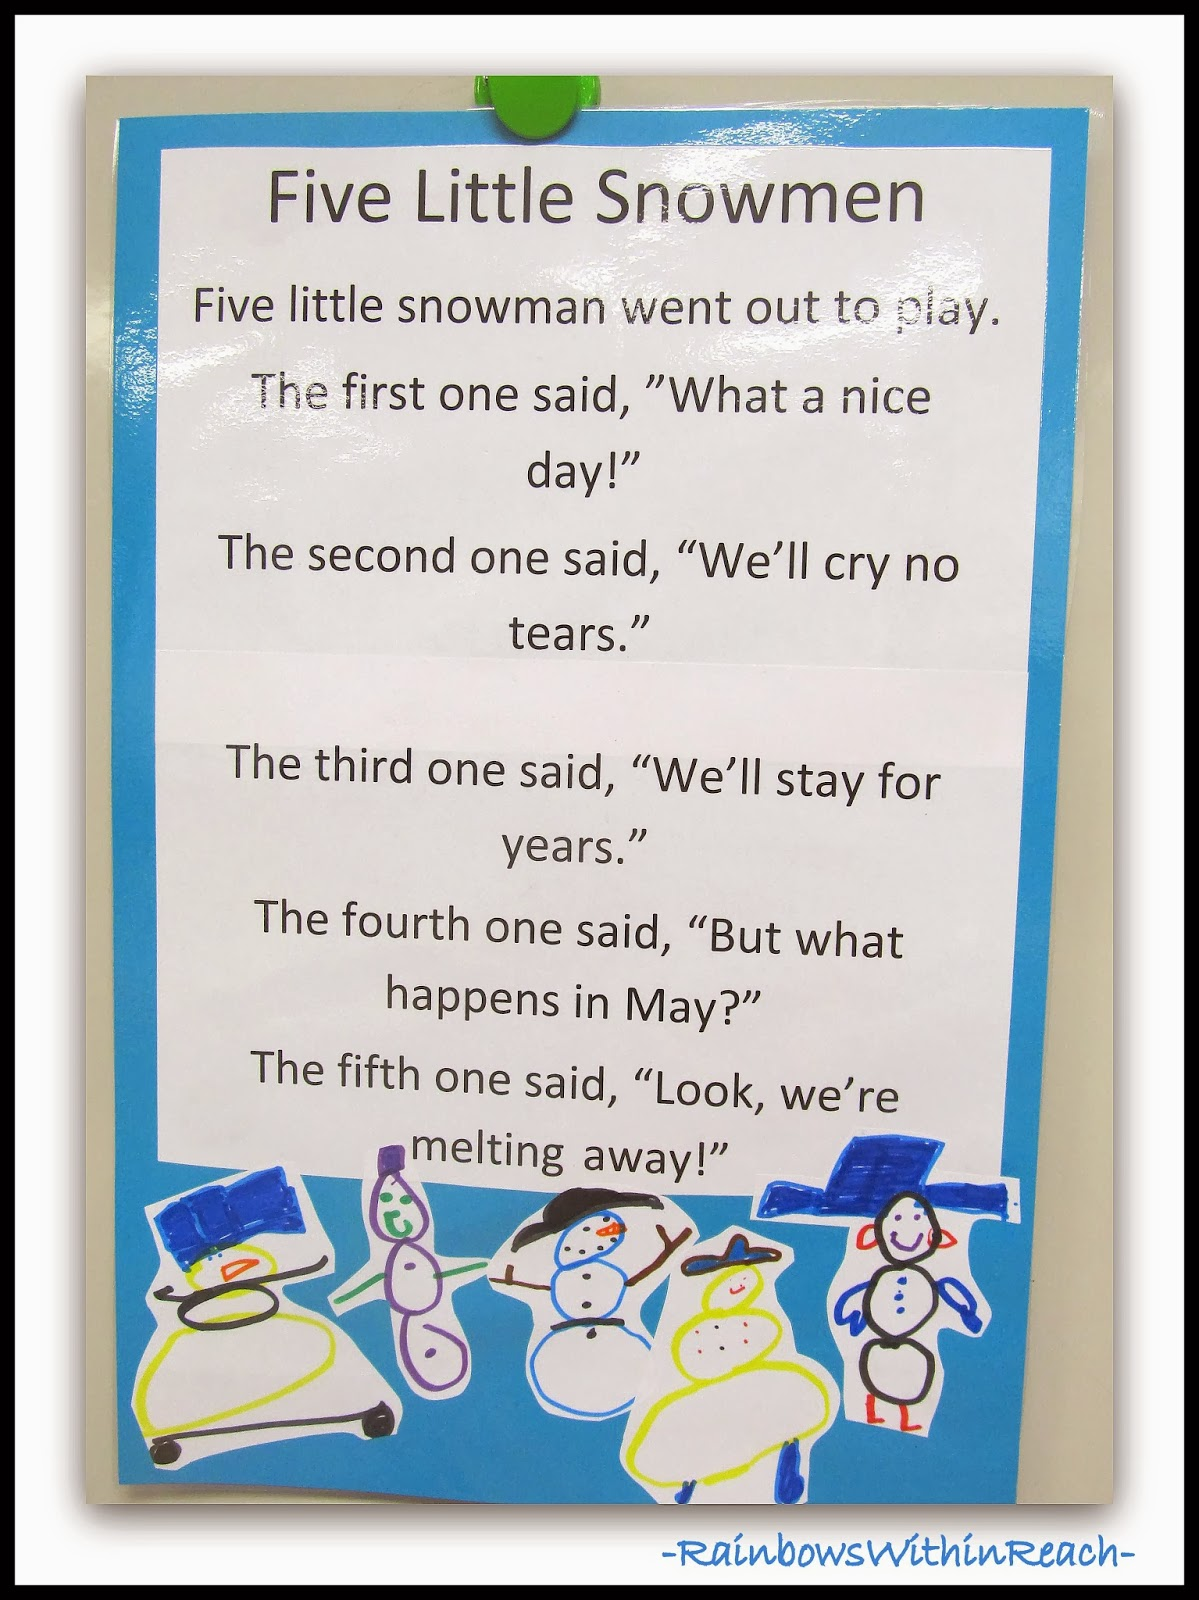 Five Snowmen Poem as Anchor Chart via RainbowsWithinReach